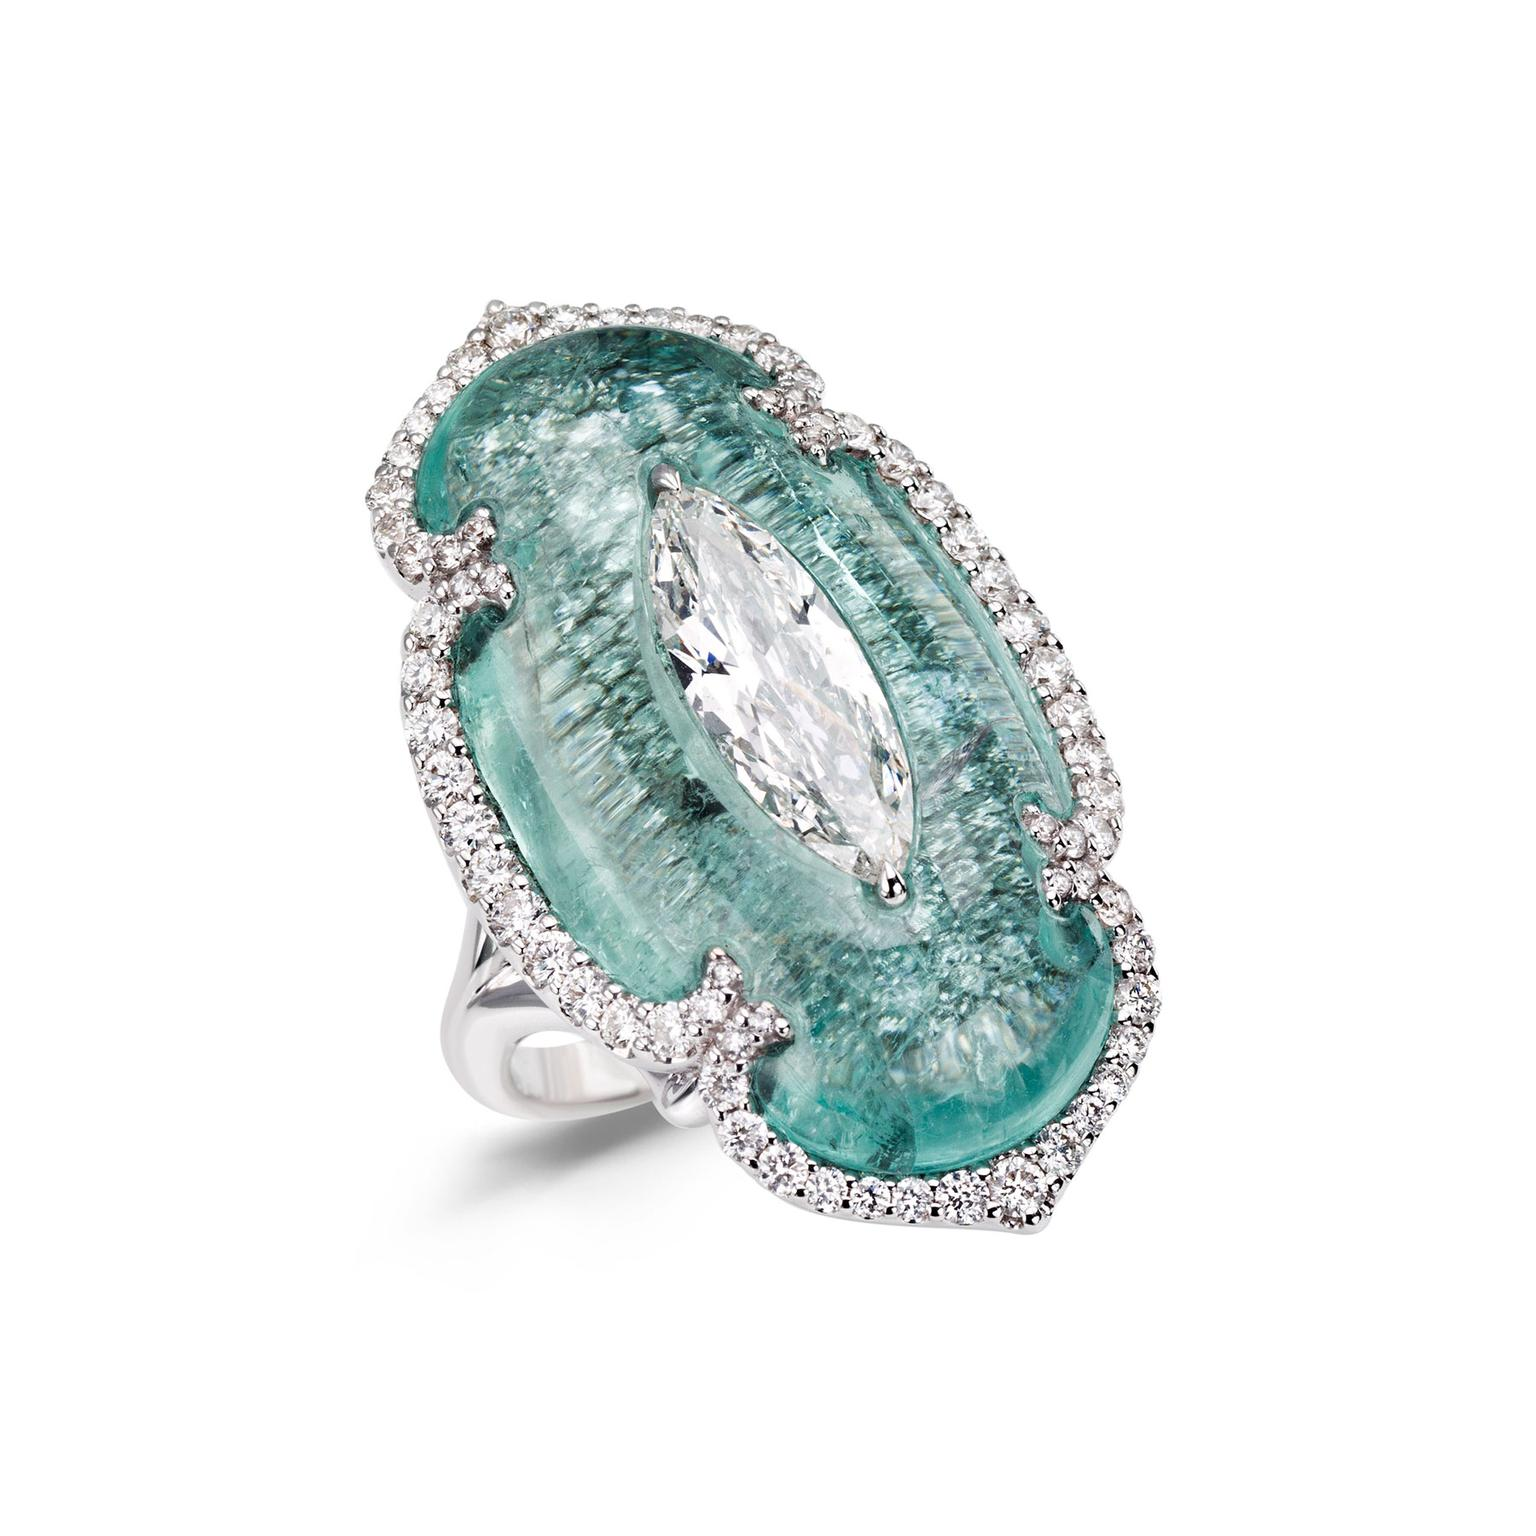 Boghossian Art of Inlay diamond and Paraiba ring